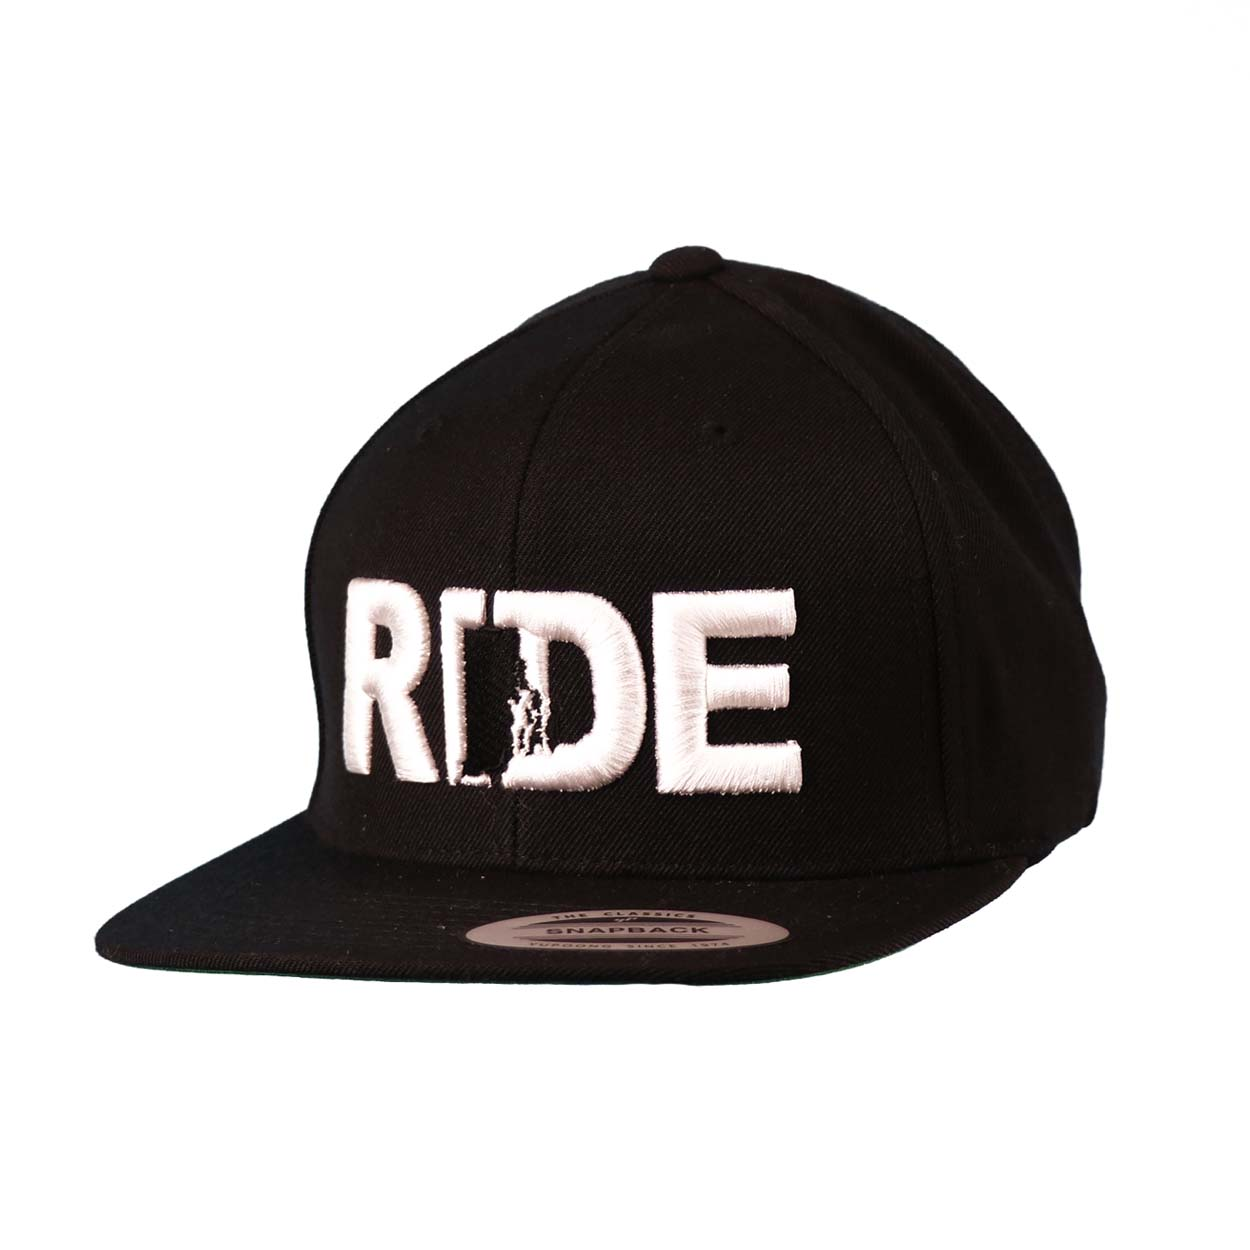 Ride Rhode Island Classic Embroidered  Snapback Flat Brim Hat Black/White